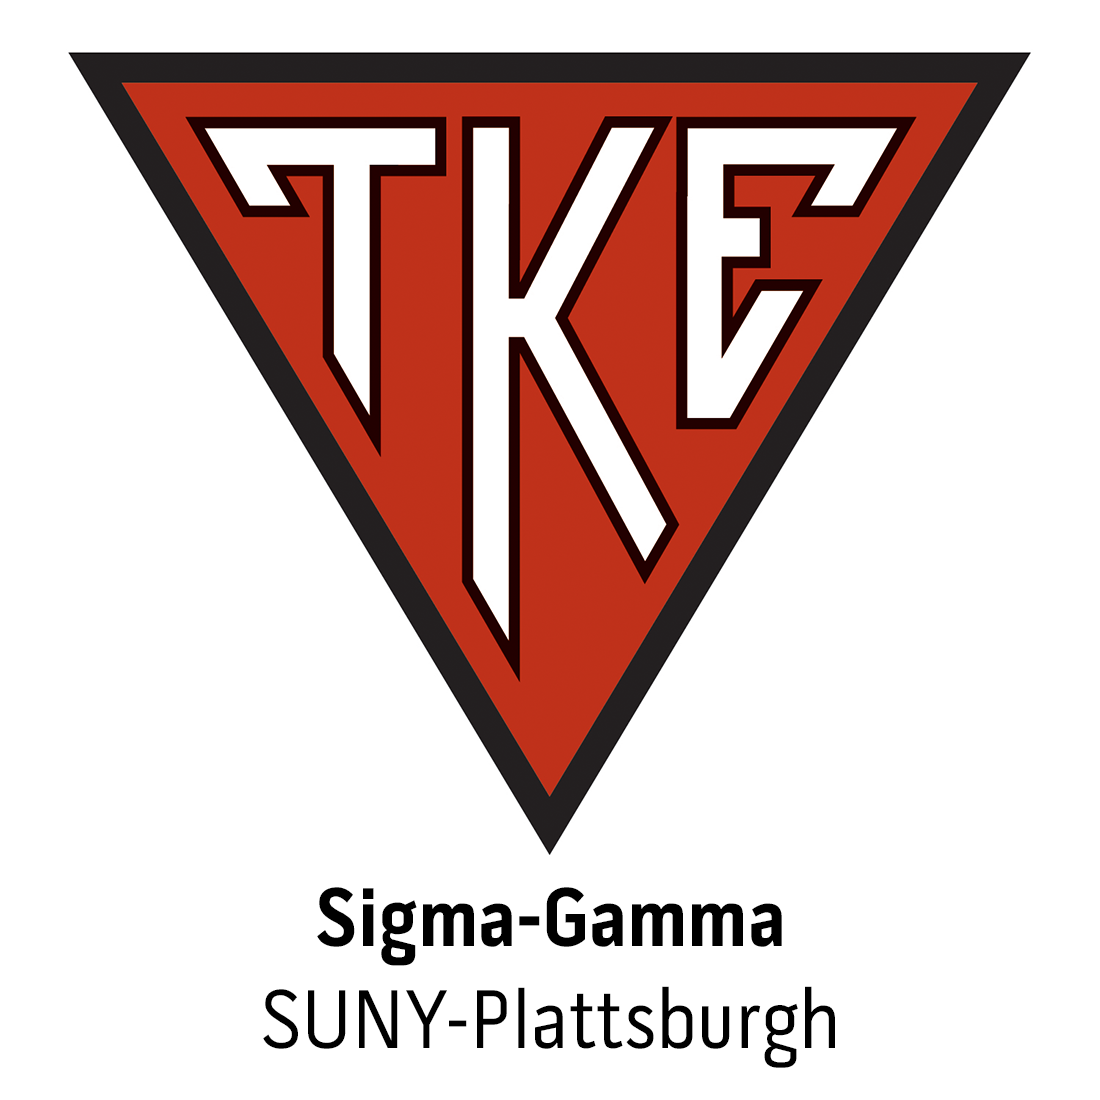 Sigma-Gamma Chapter at State University of New York at Plattsburgh